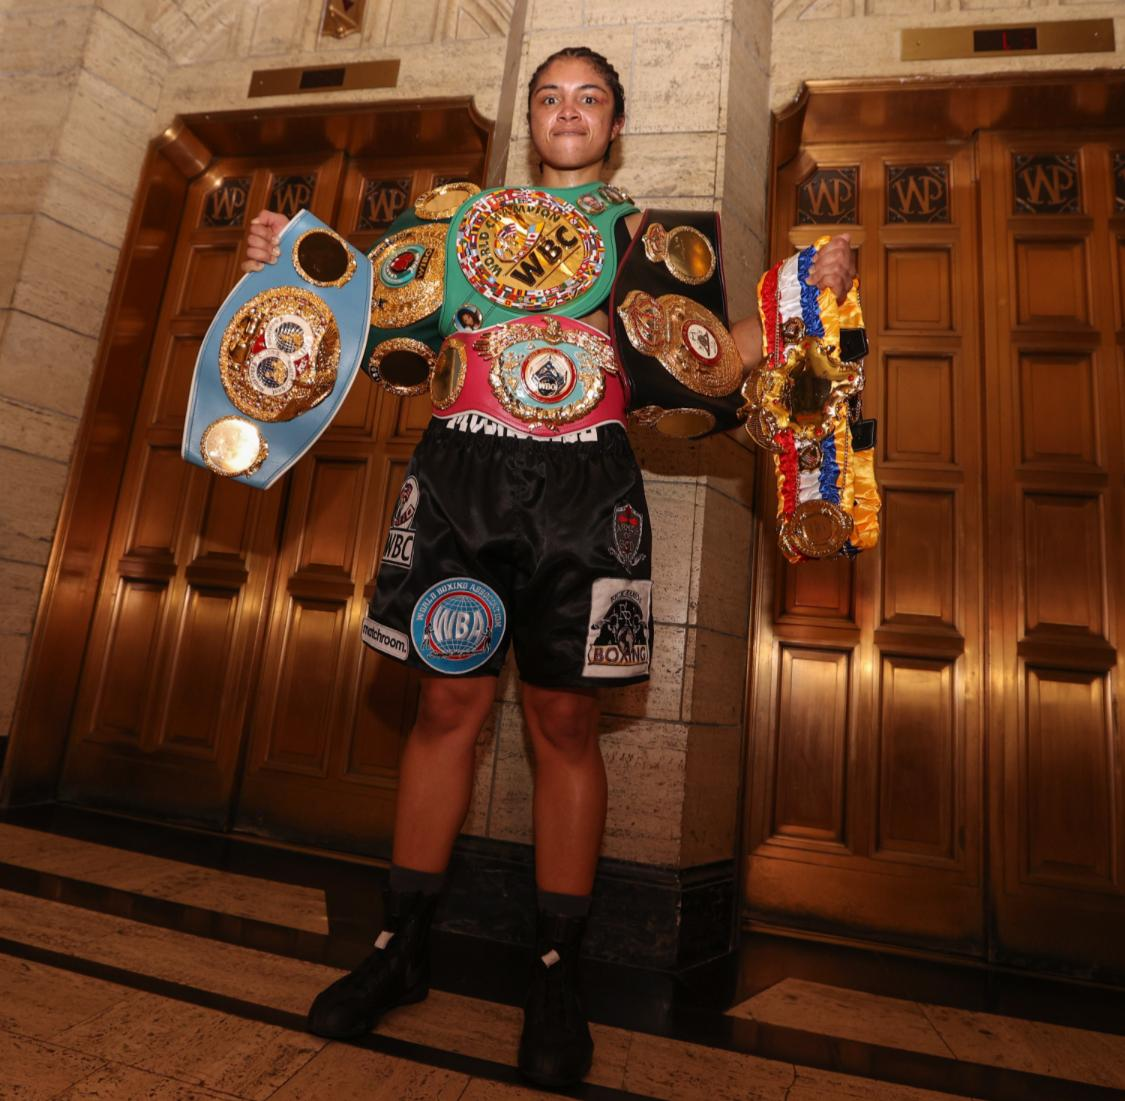 McCaskIll made history in female boxing